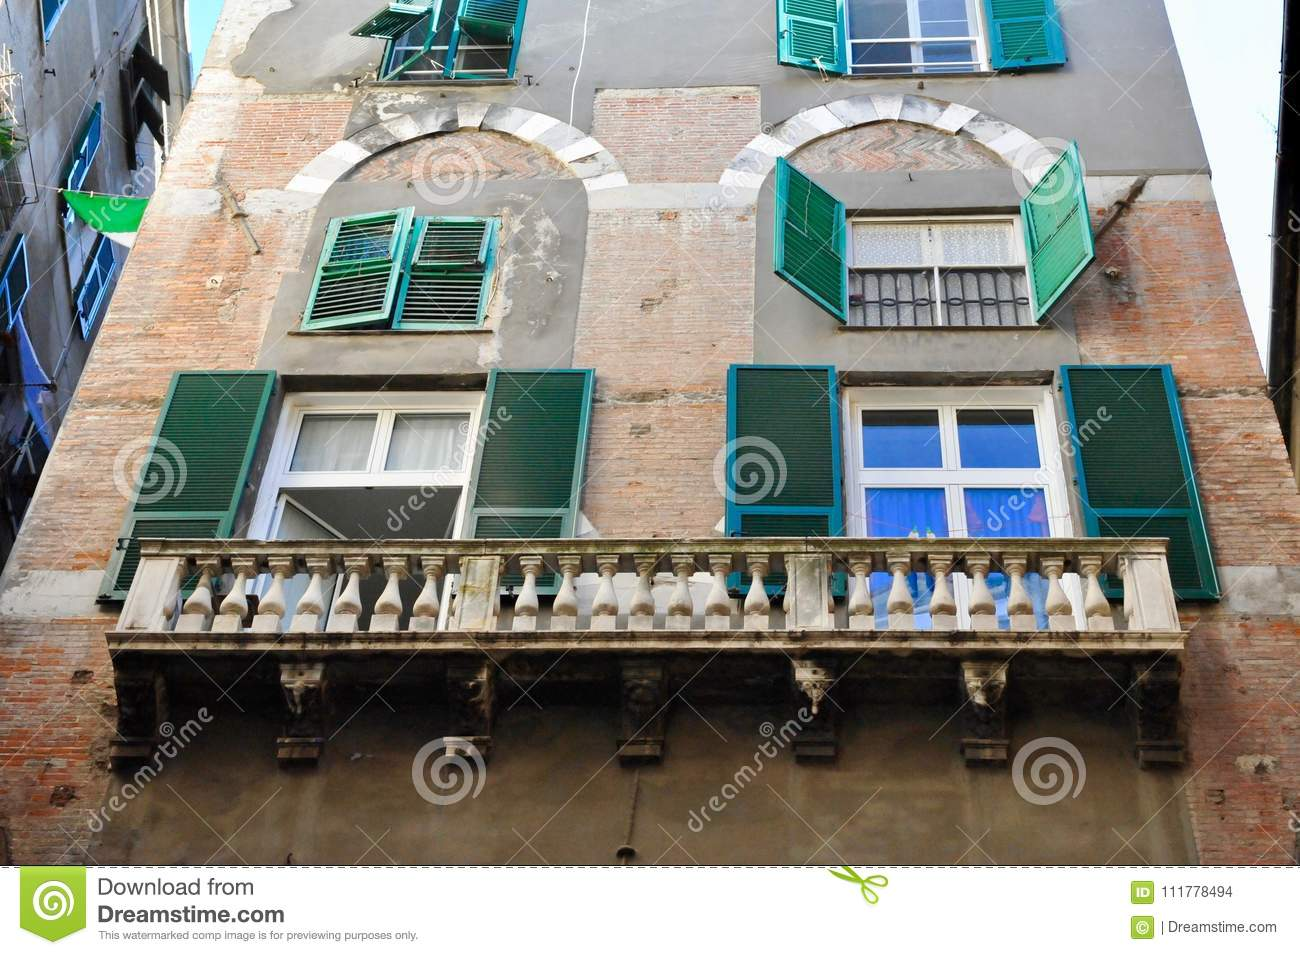 Balconies and windows with green shatters on facade of building in Genova, Italy.